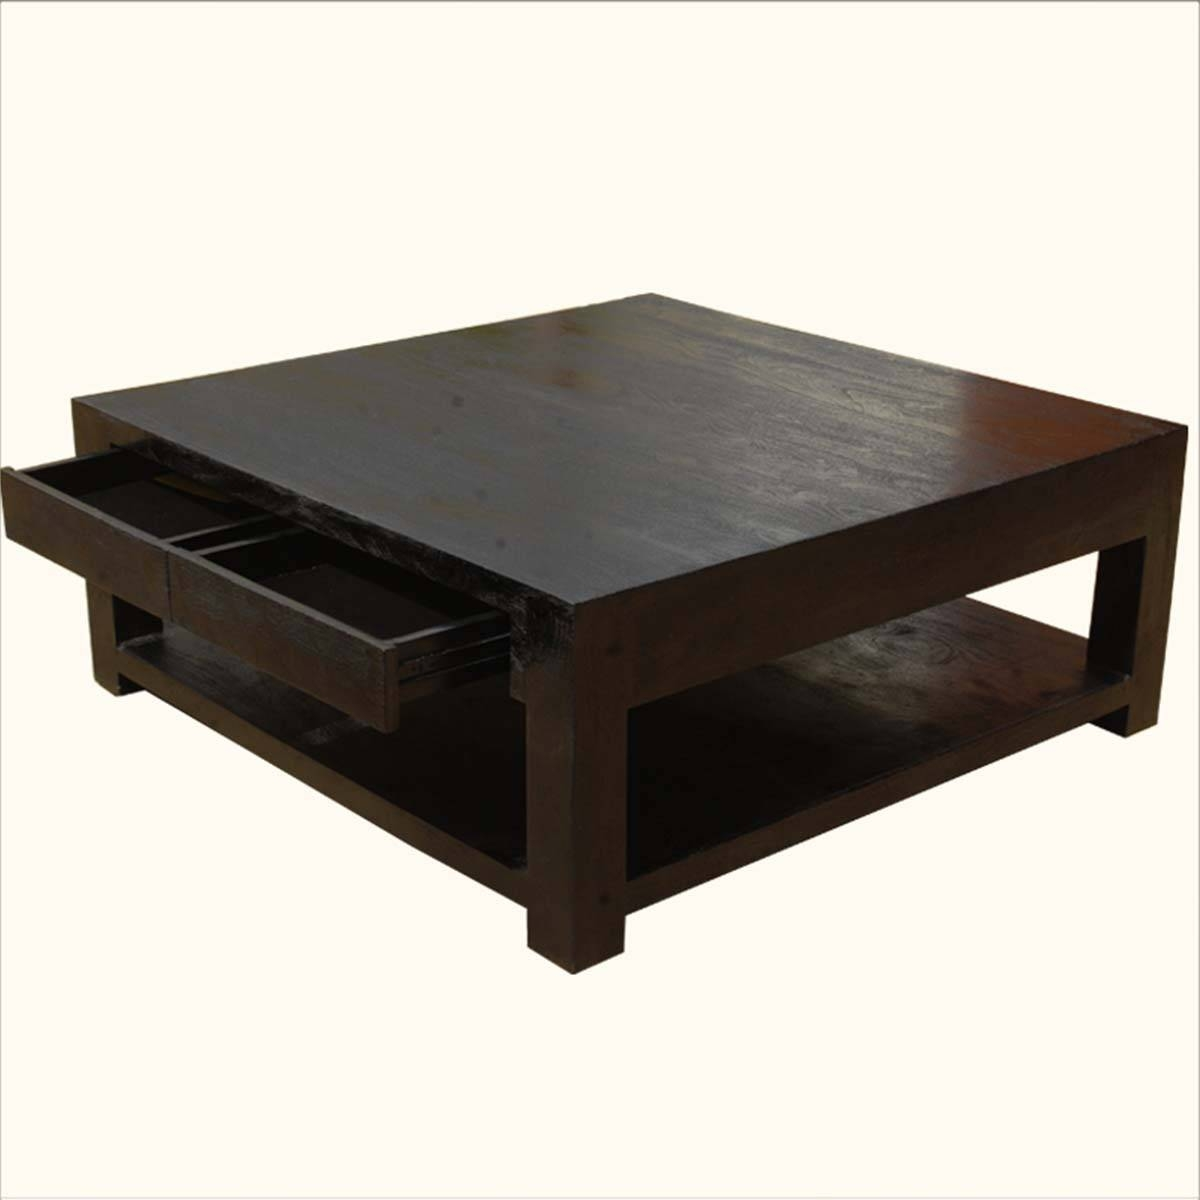 Black Coffee Tables With Storage #7994 intended for Black Coffee Tables With Storage (Image 4 of 30)